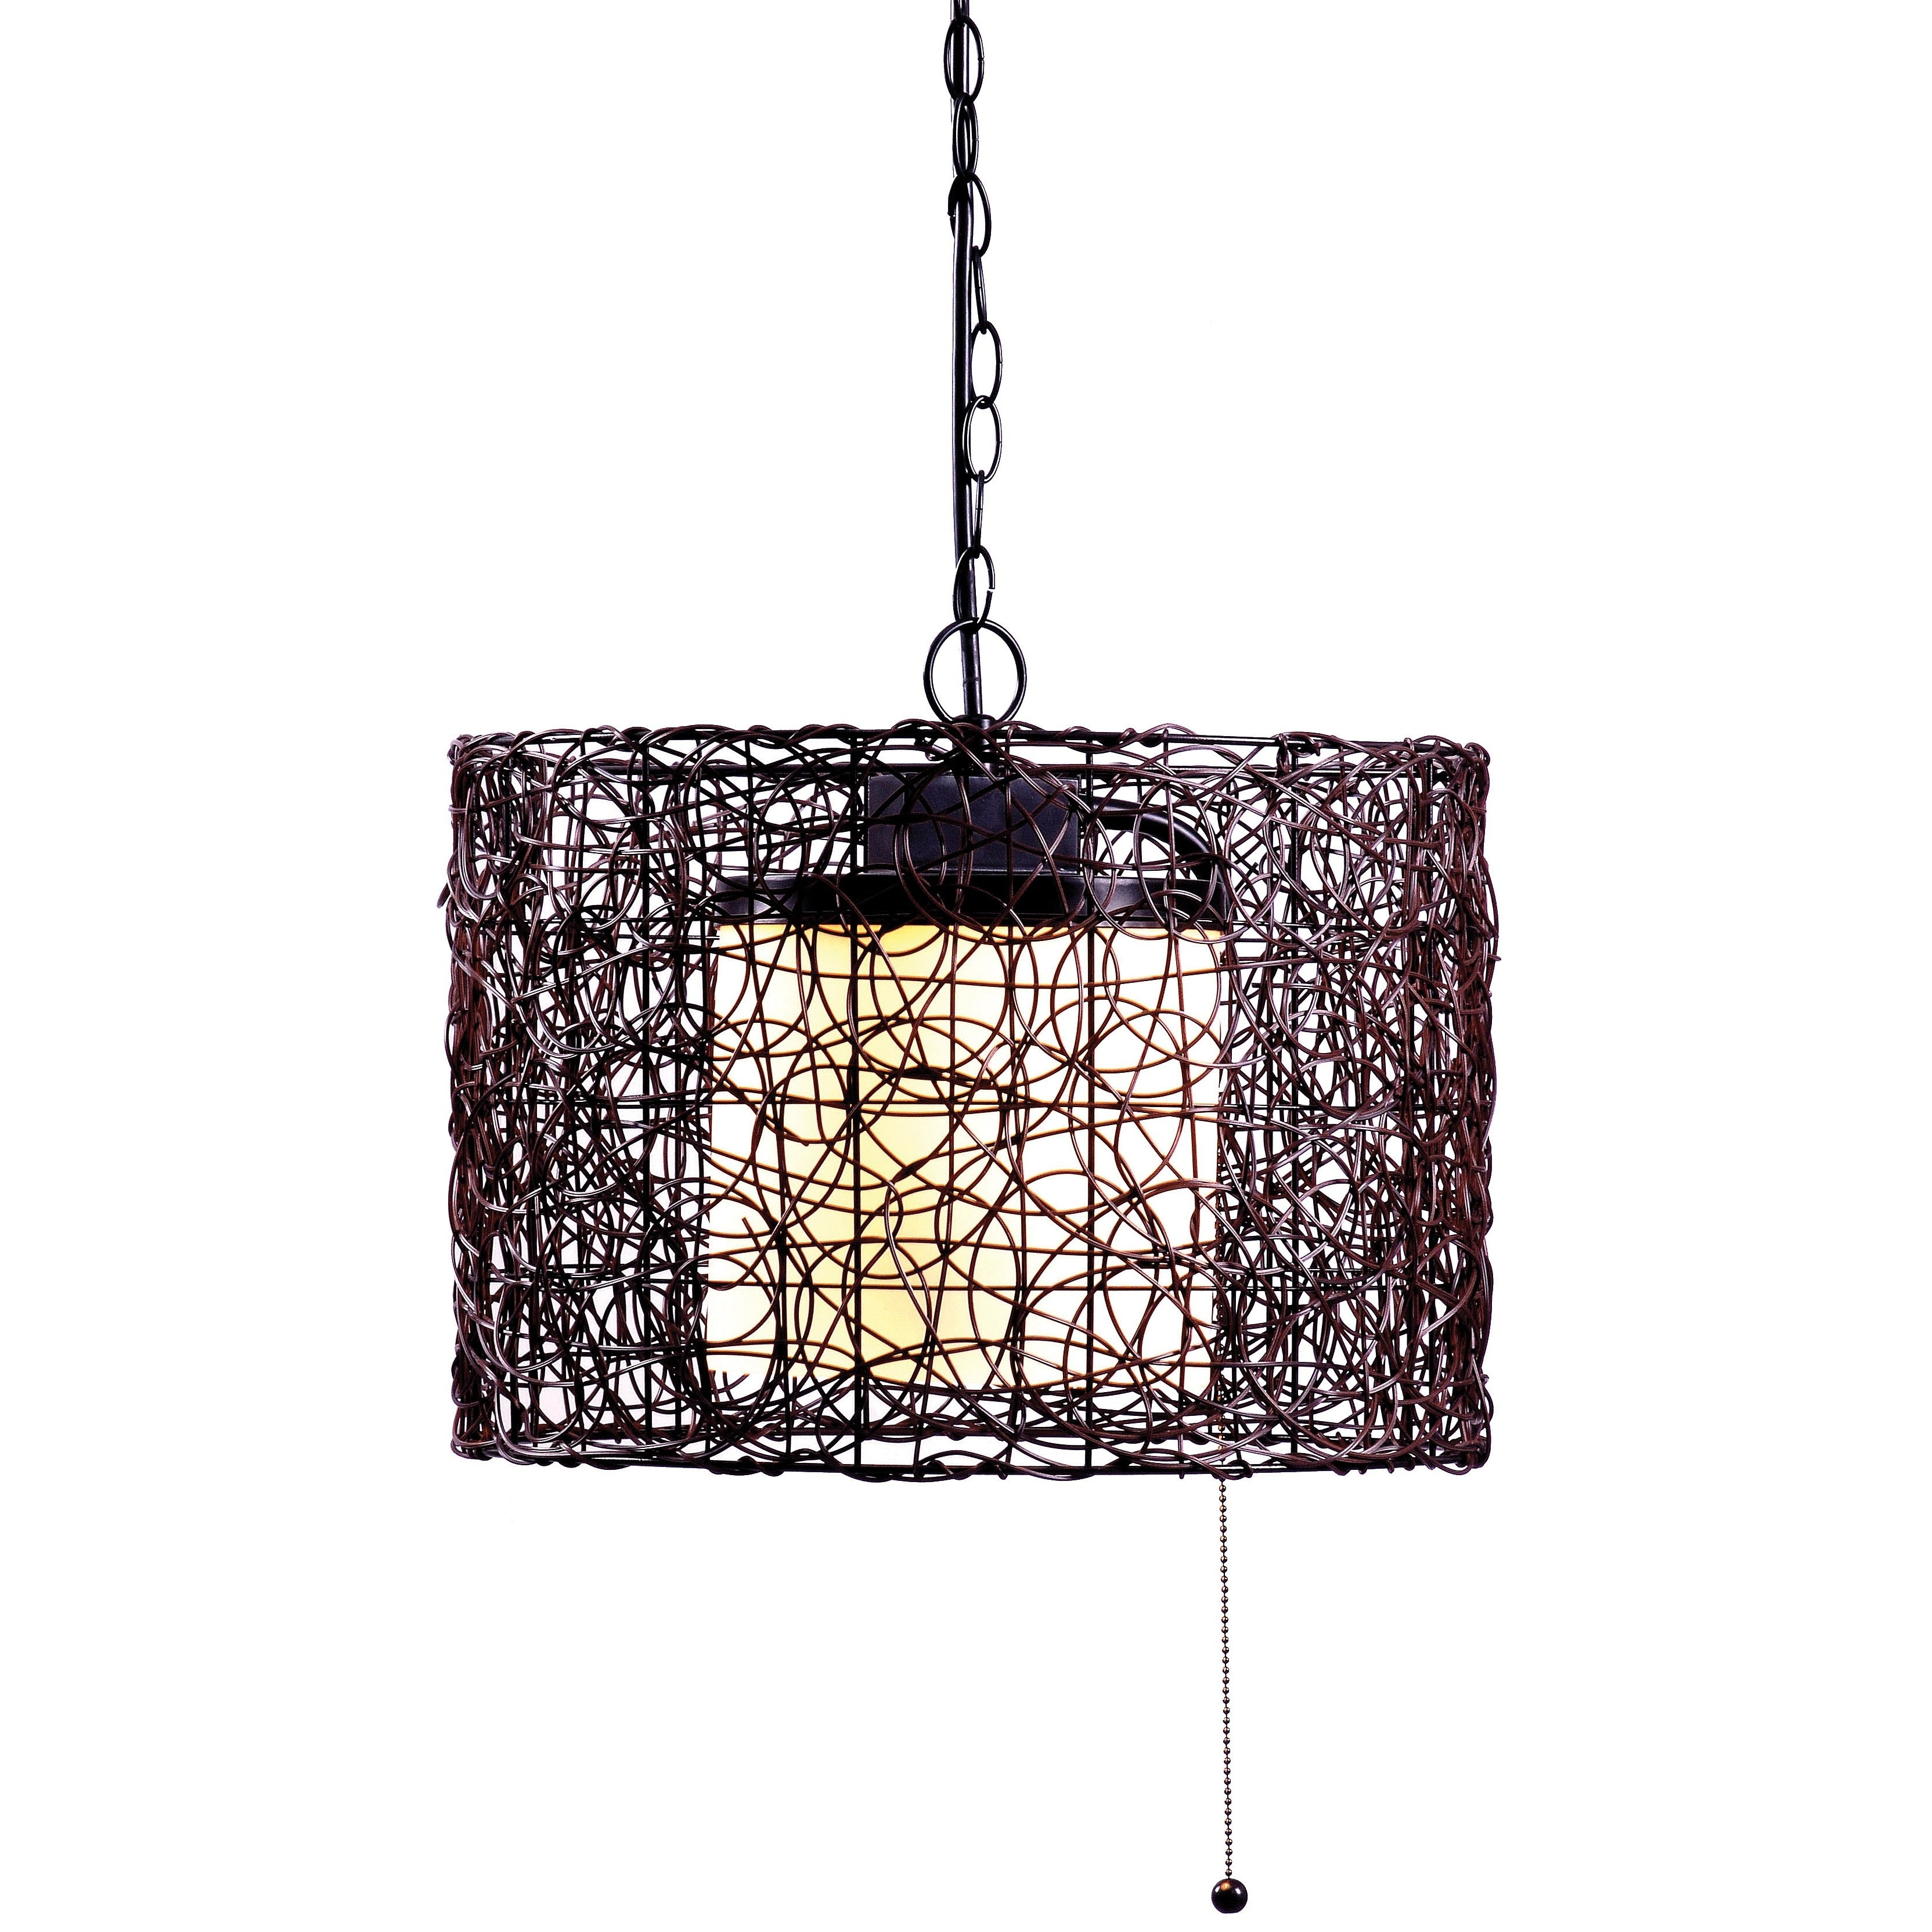 Most Current Rustic Outdoor Lighting At Wayfair Throughout Rustic Outdoor Hanging Lights Wayfair Rosalind 47 Light Pendant (View 6 of 20)